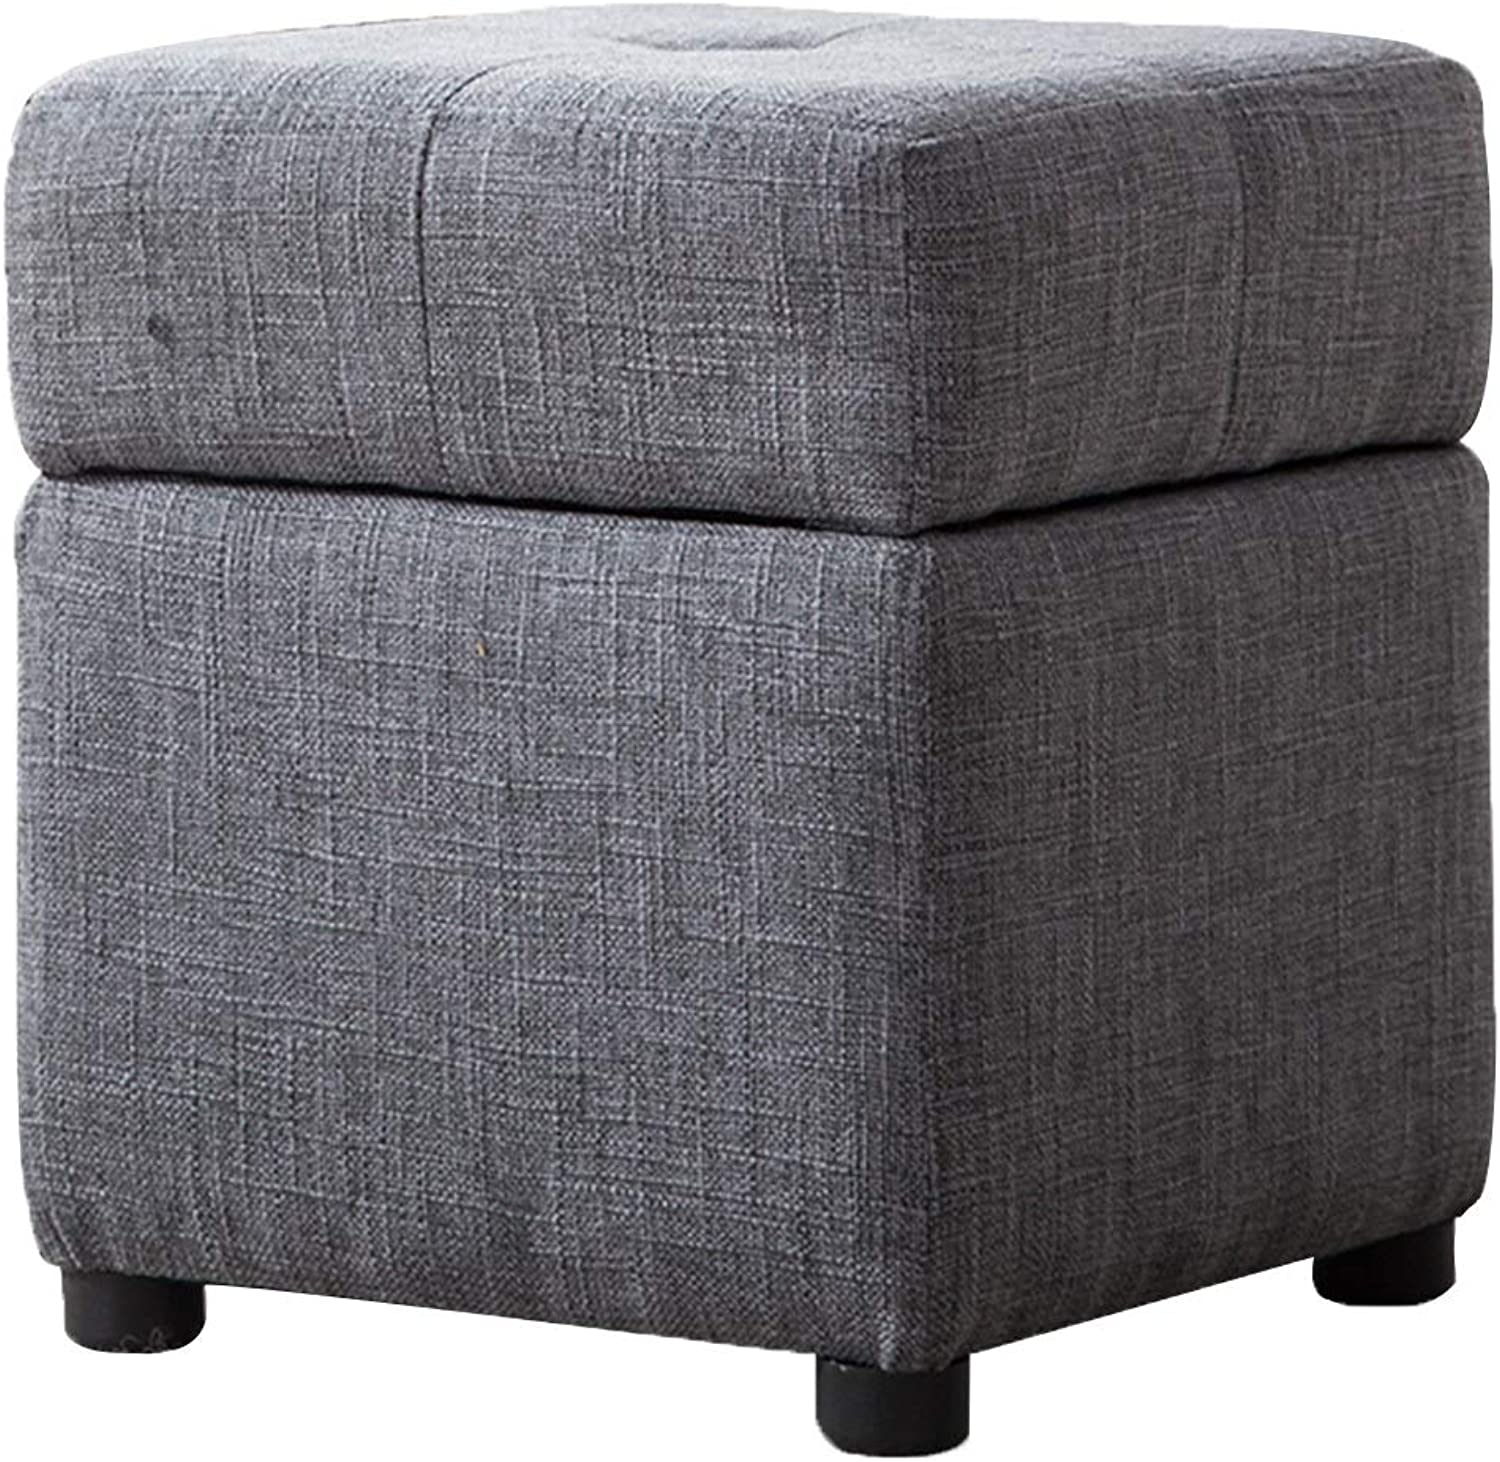 BYPING Pouffes and Stool Upholstered Footstools Square Structure Solid Wood Storage Bedroom Cotton Pad Cozy, 4 colors (color   A, Size   30X30X36CM)